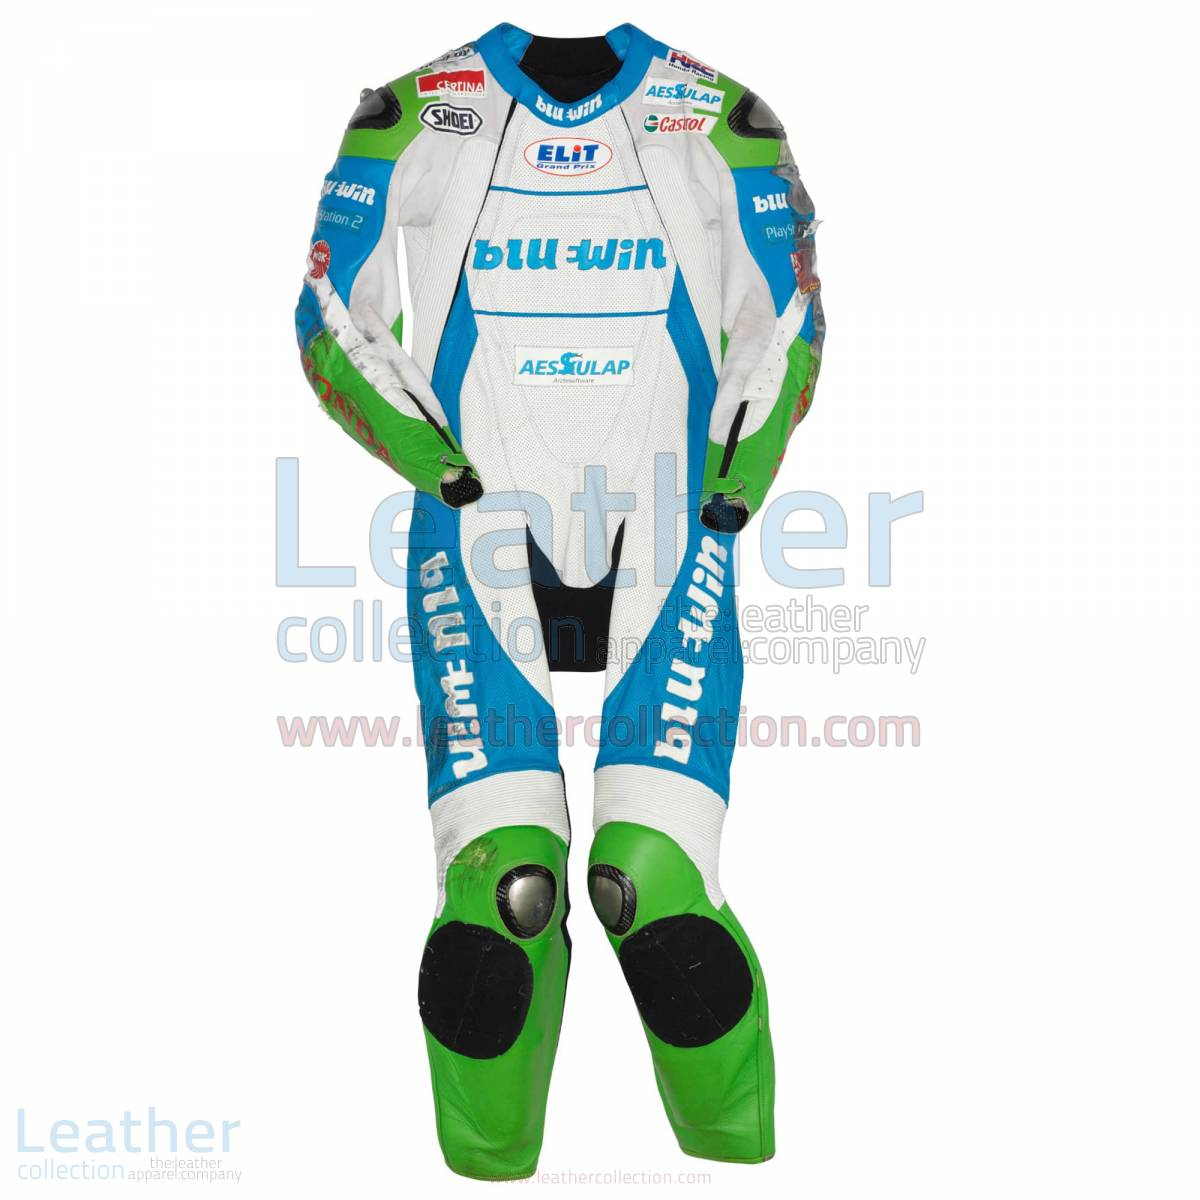 Thomas Luthi Honda GP 2005 Leather Suit